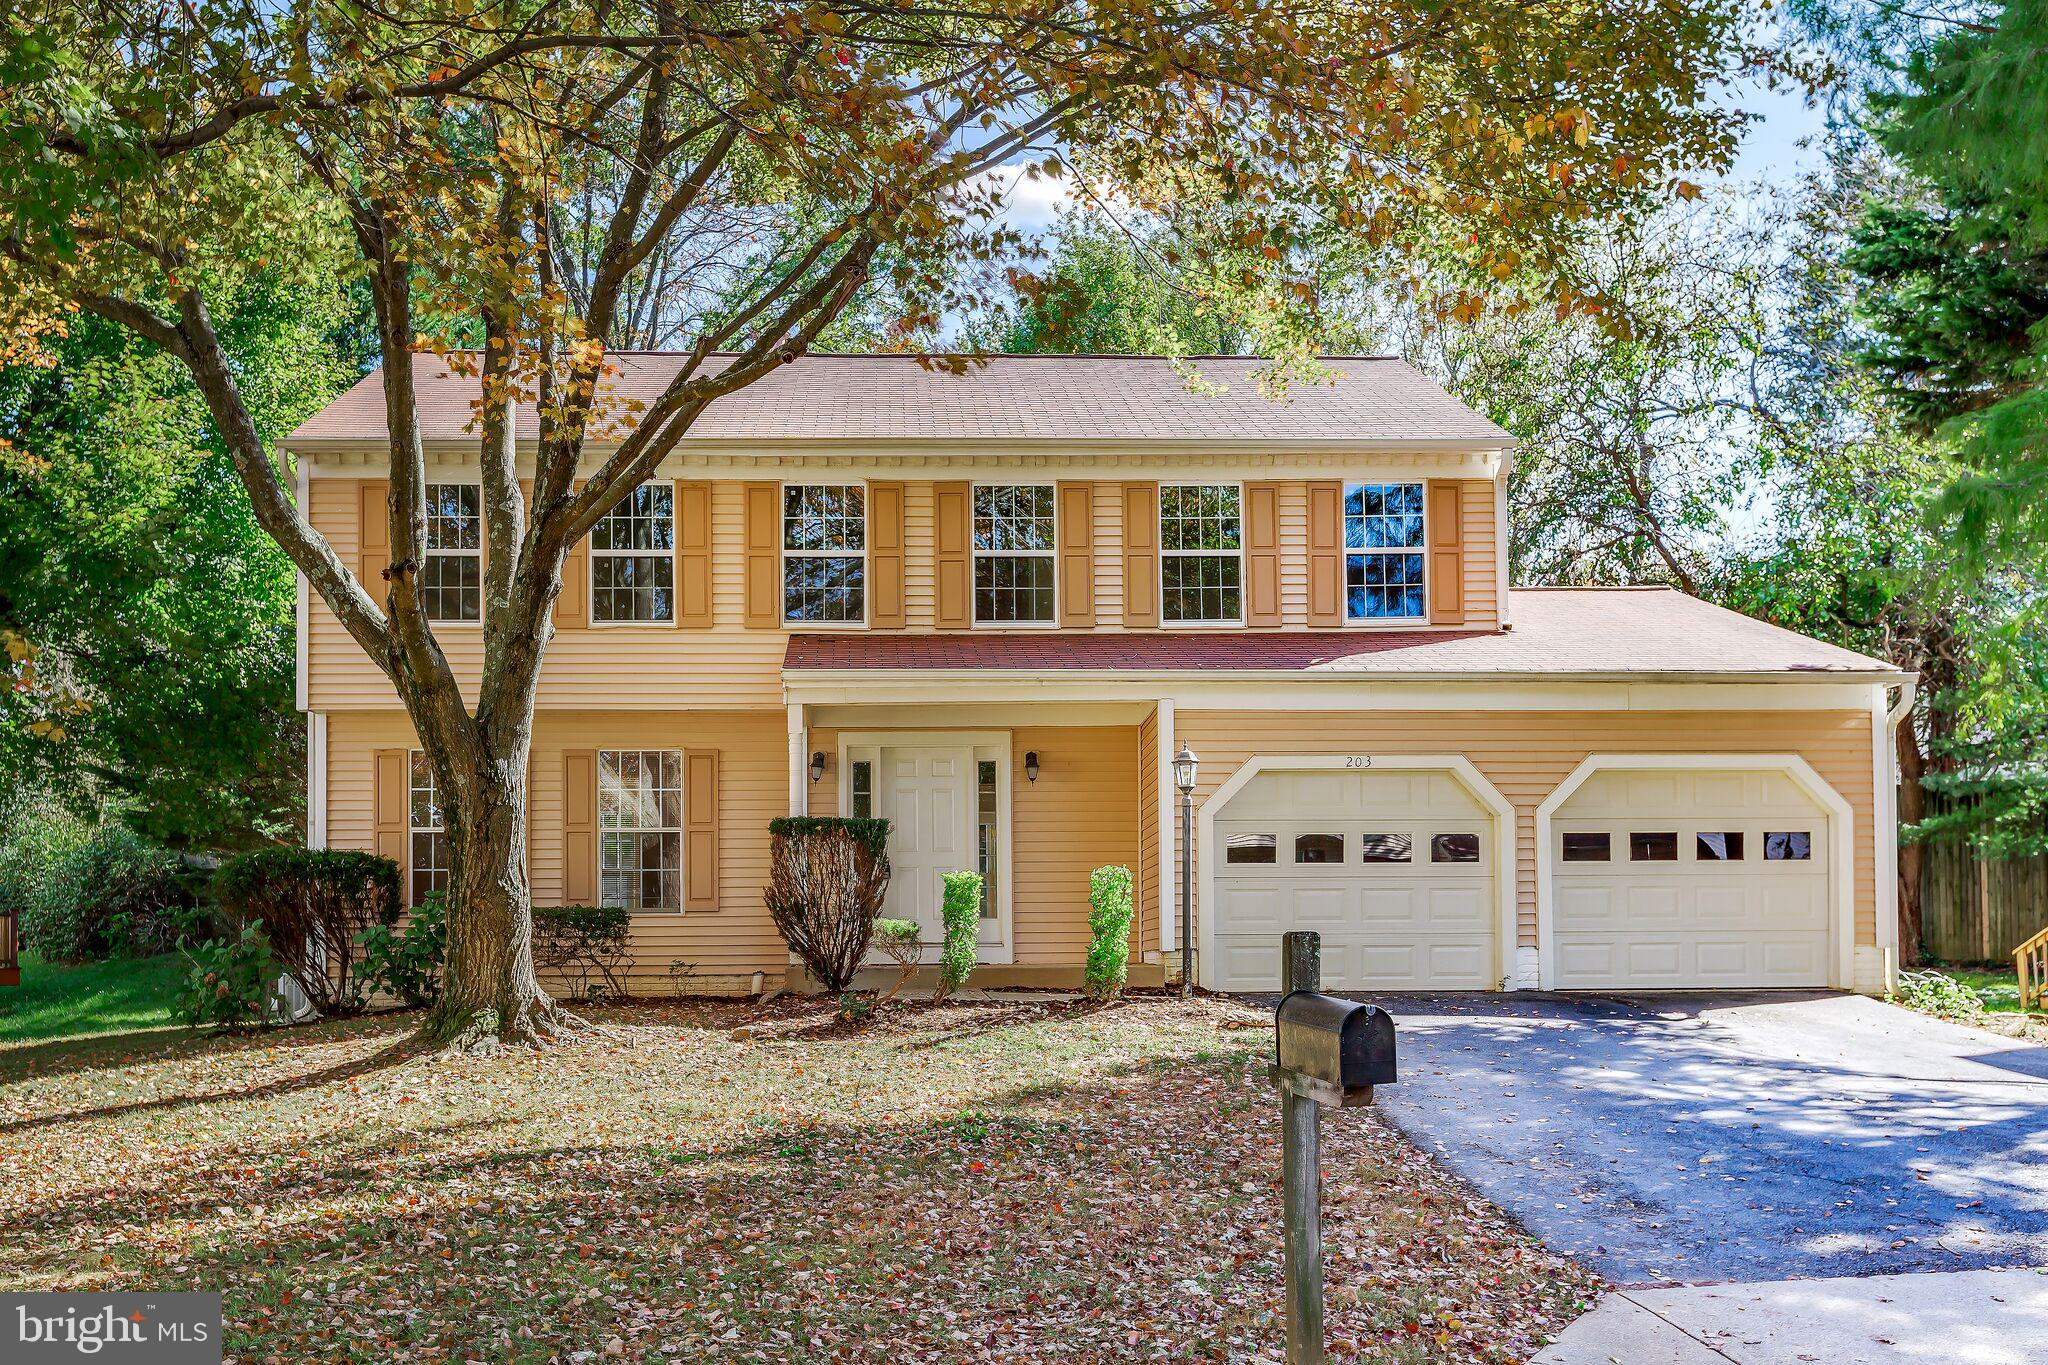 203 BOOKHAM LANE, GAITHERSBURG, MD 20877